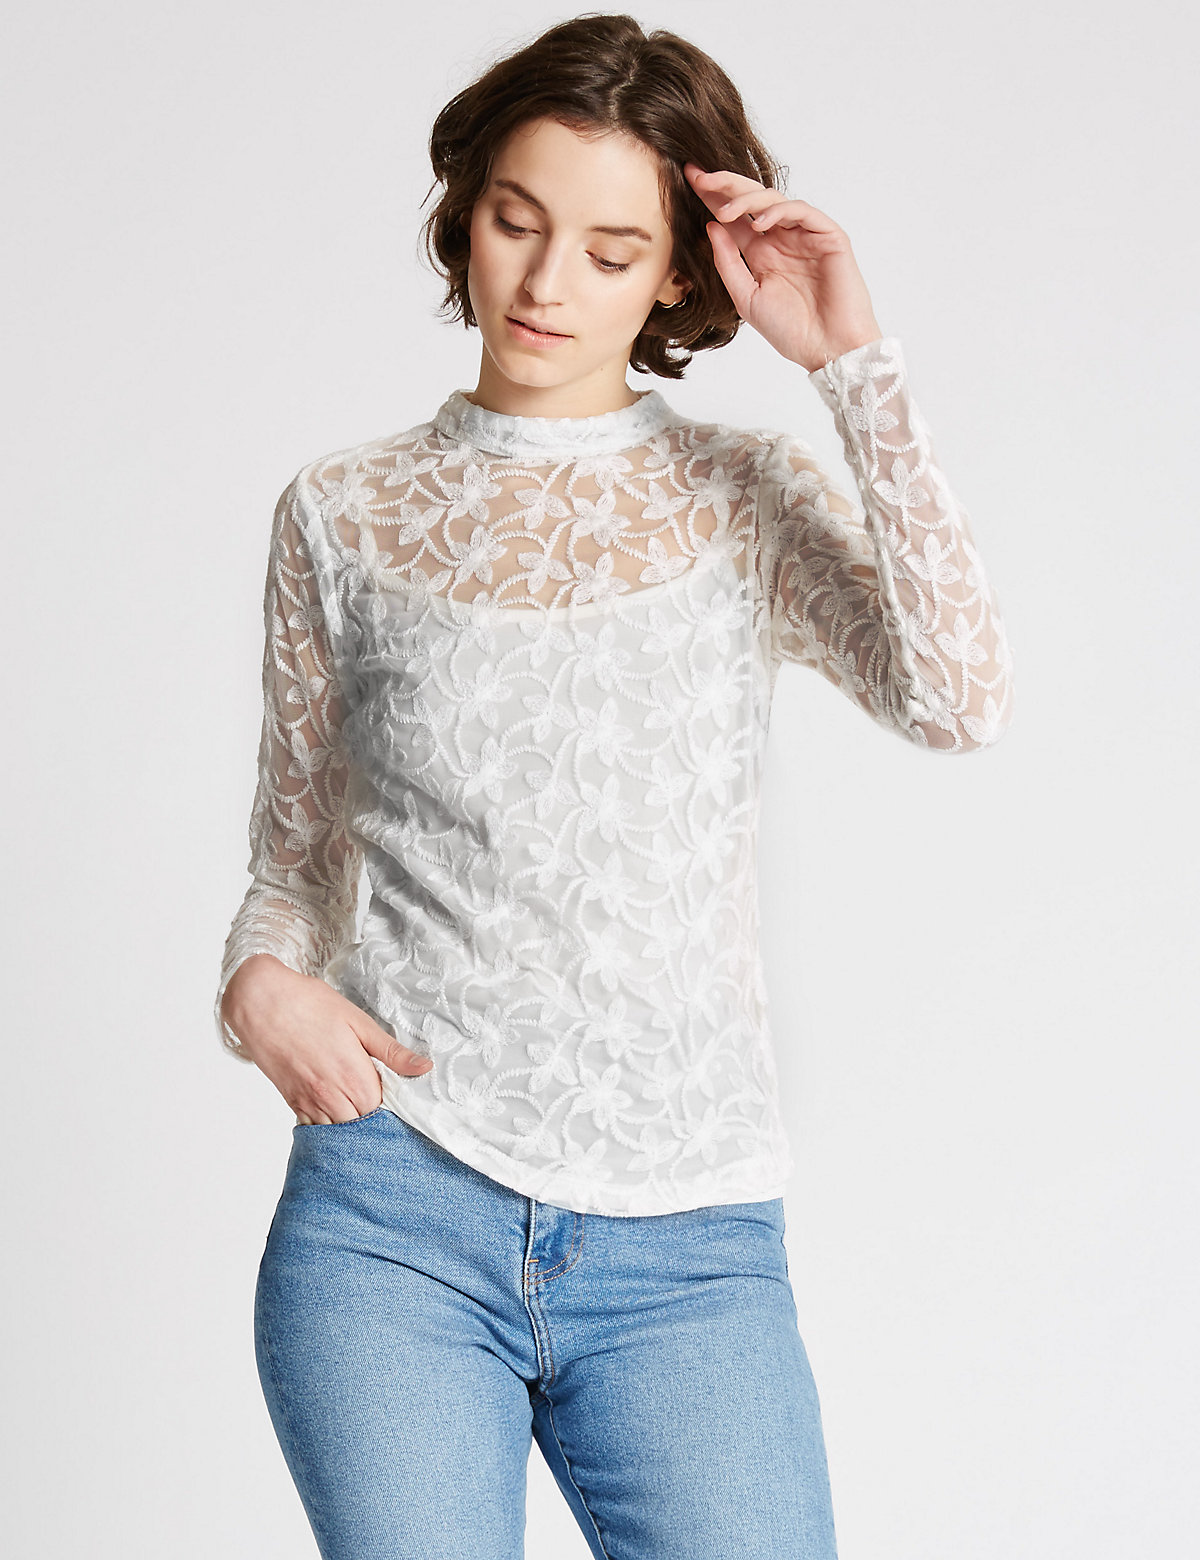 Limited Edition Cotton Blend Embroidered Long Sleeve Blouse Marks and Spencer P22510268